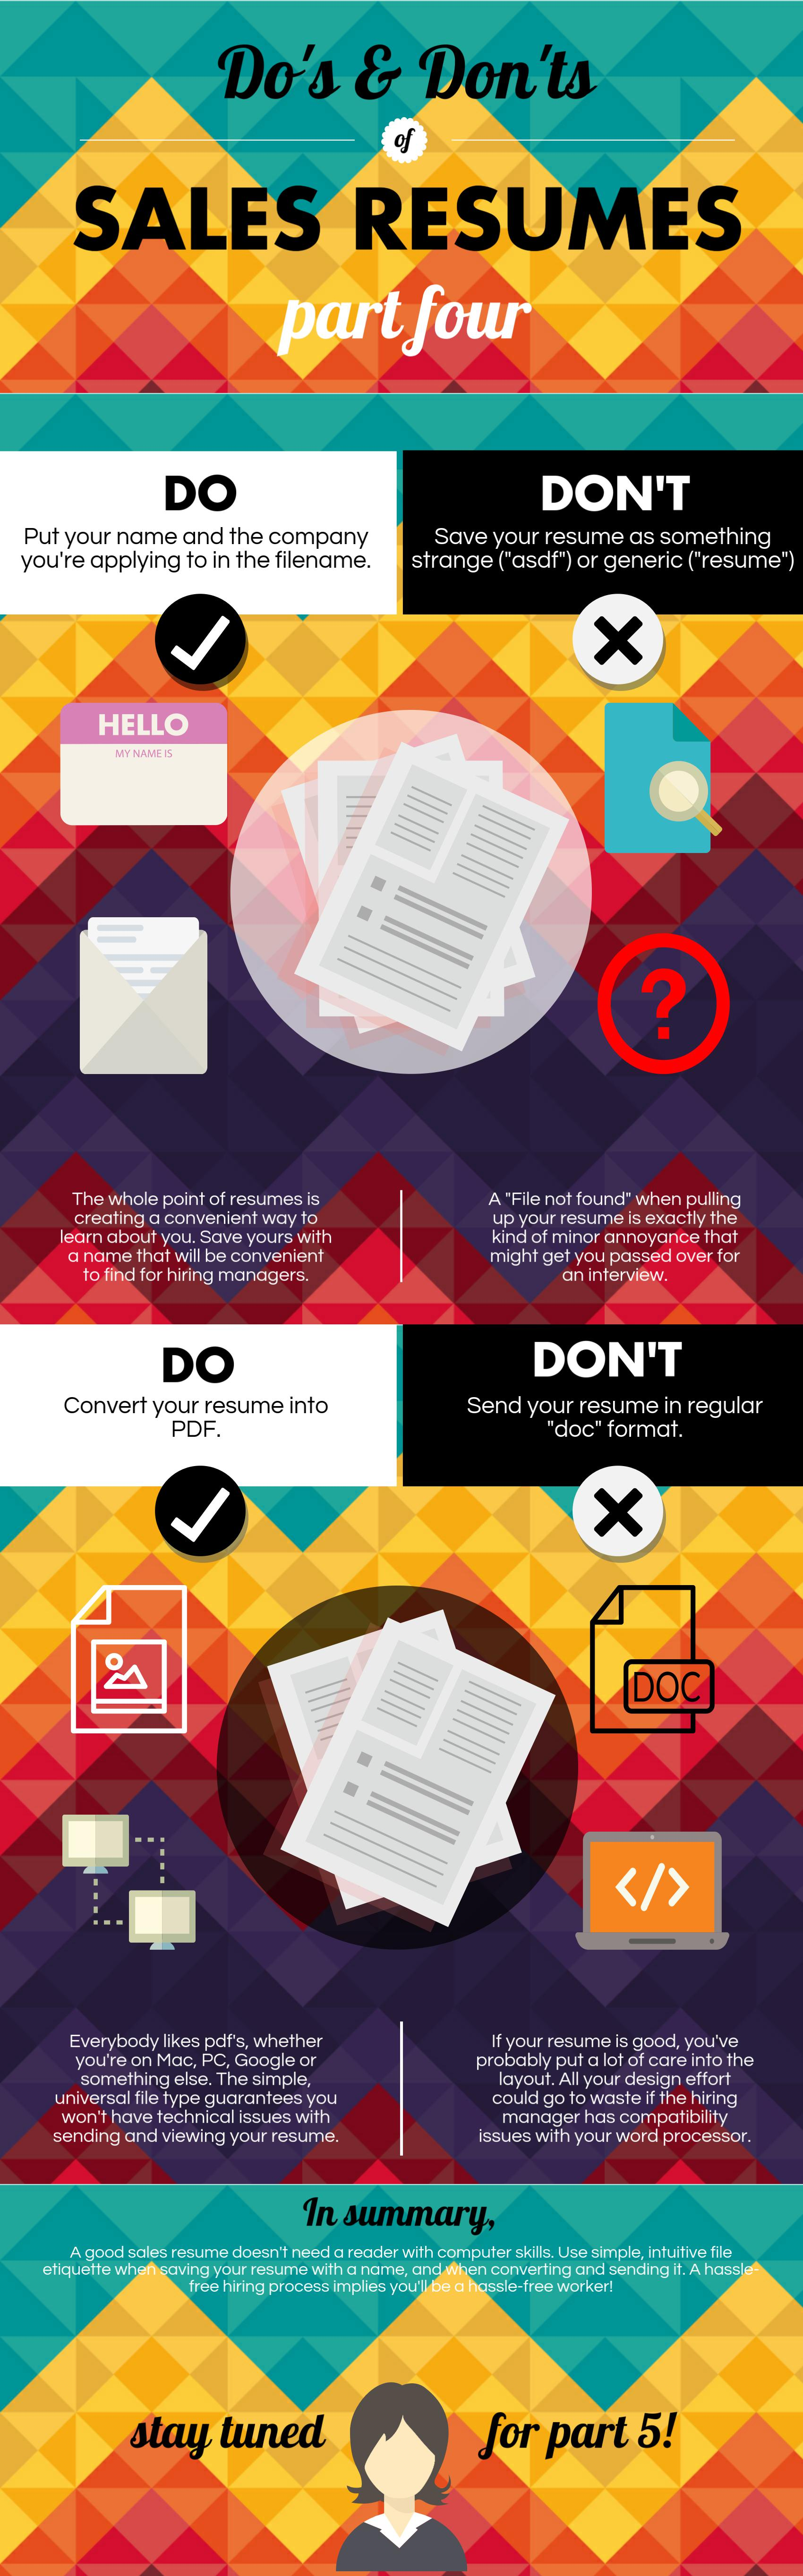 Dos And Donts Of Sales Resumes Part 4 Infographic